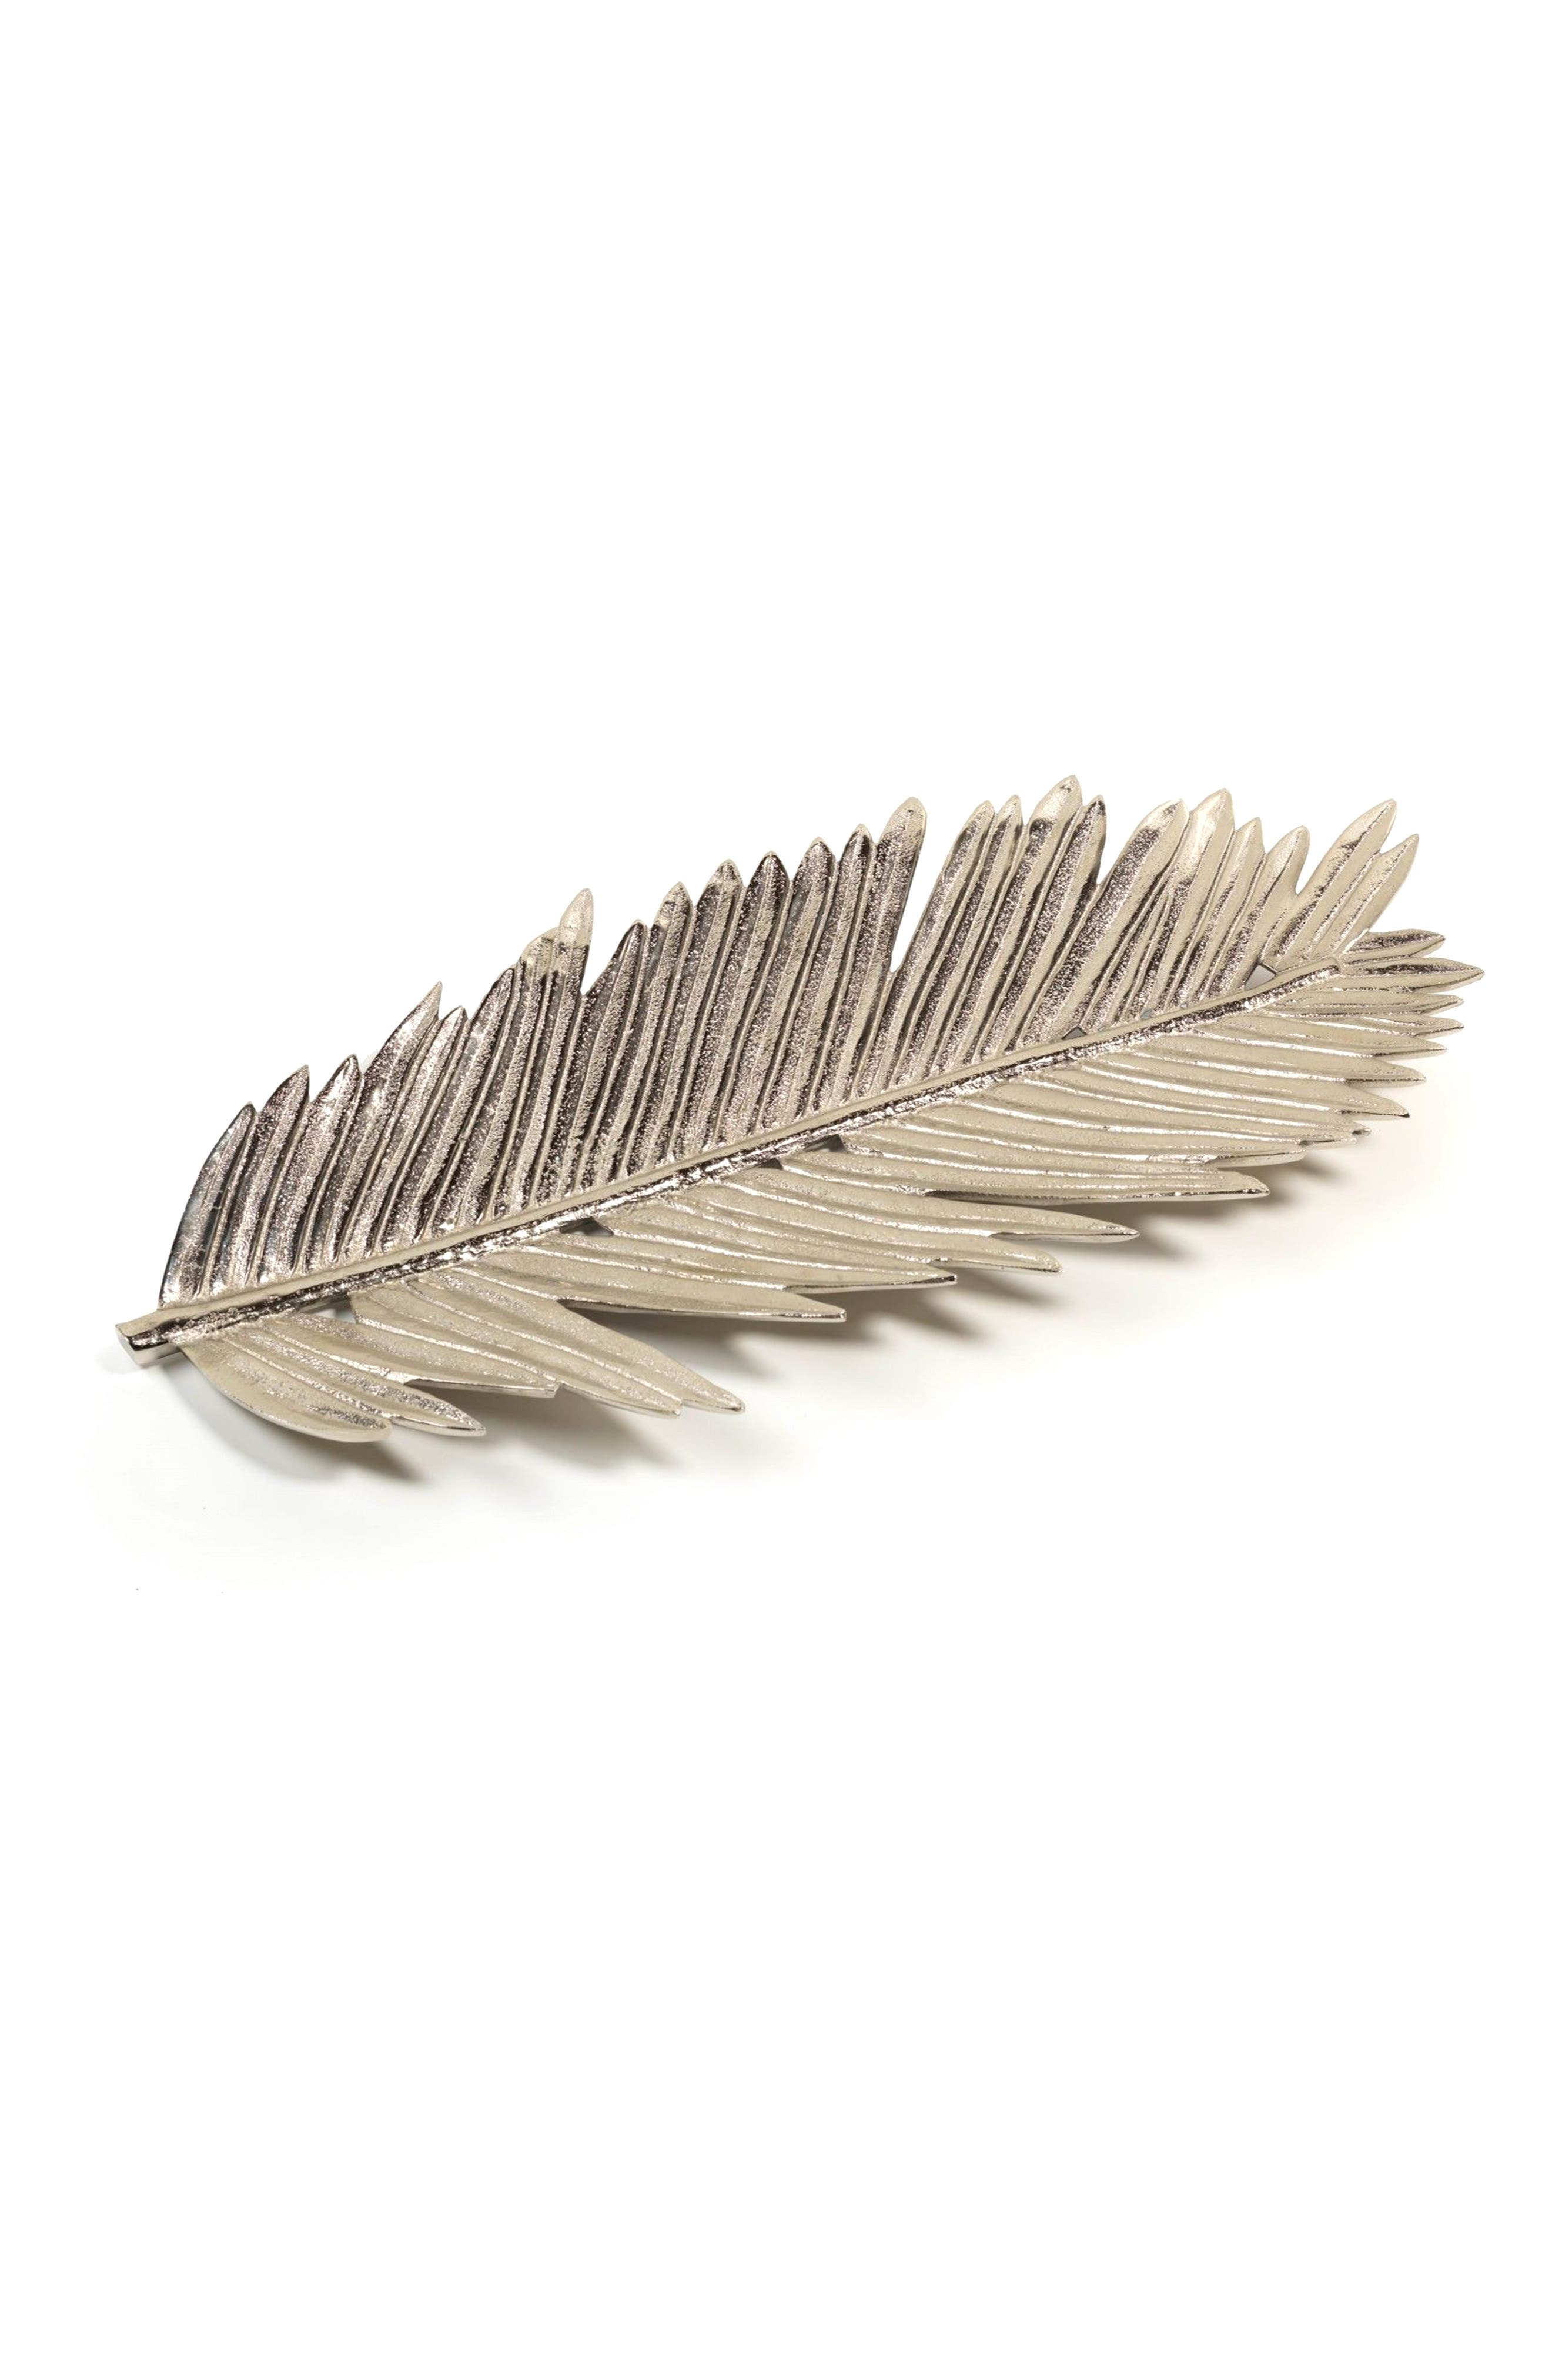 Pinnate Feather Palm Decorative Tray,                             Main thumbnail 1, color,                             040